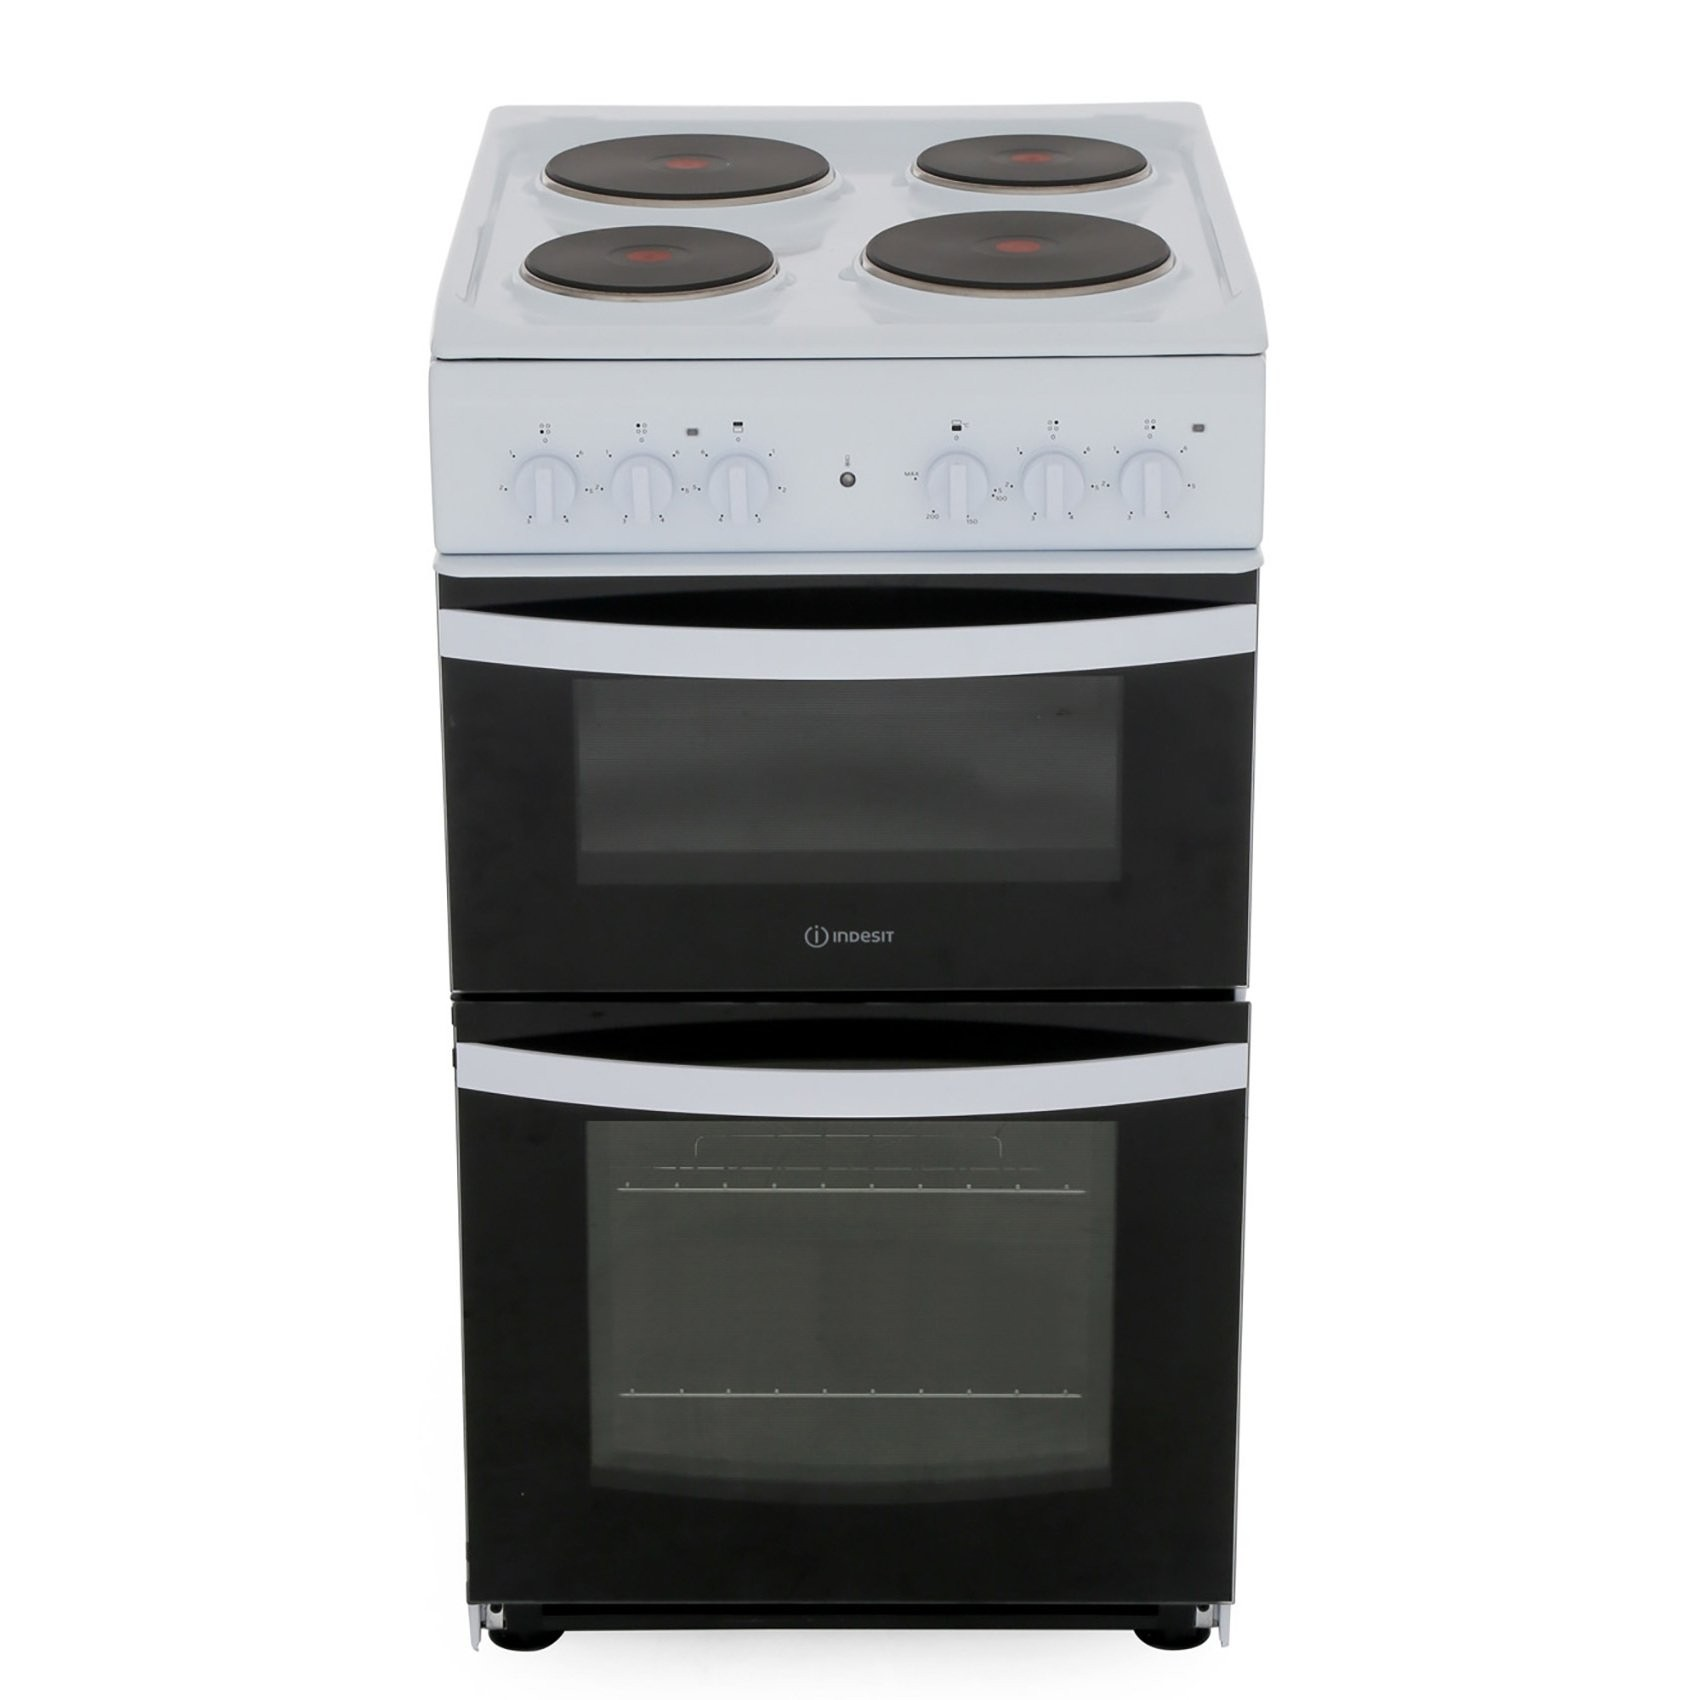 Indesit ID5E92KMW Electric Cooker